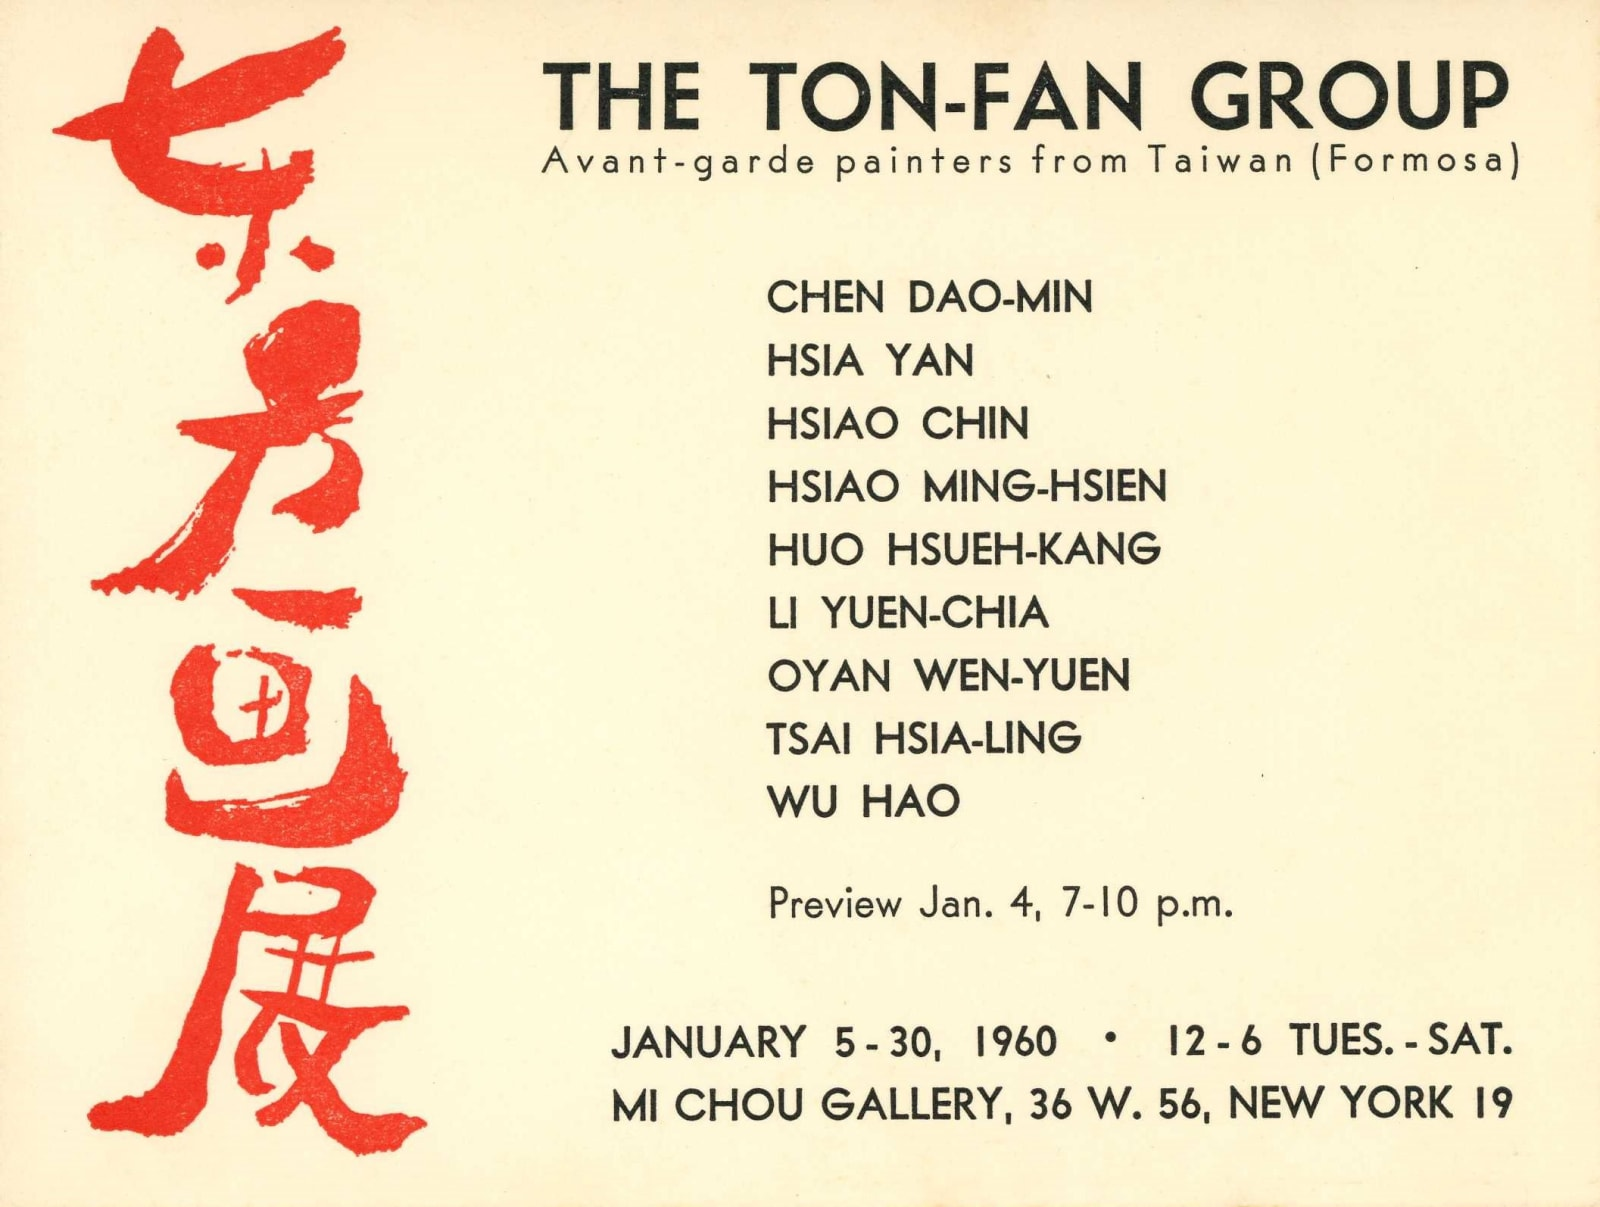 Jan 1960, Ton-Fan Art Group Exhibition in New York 1960年1月「東方畫展」於紐約展出